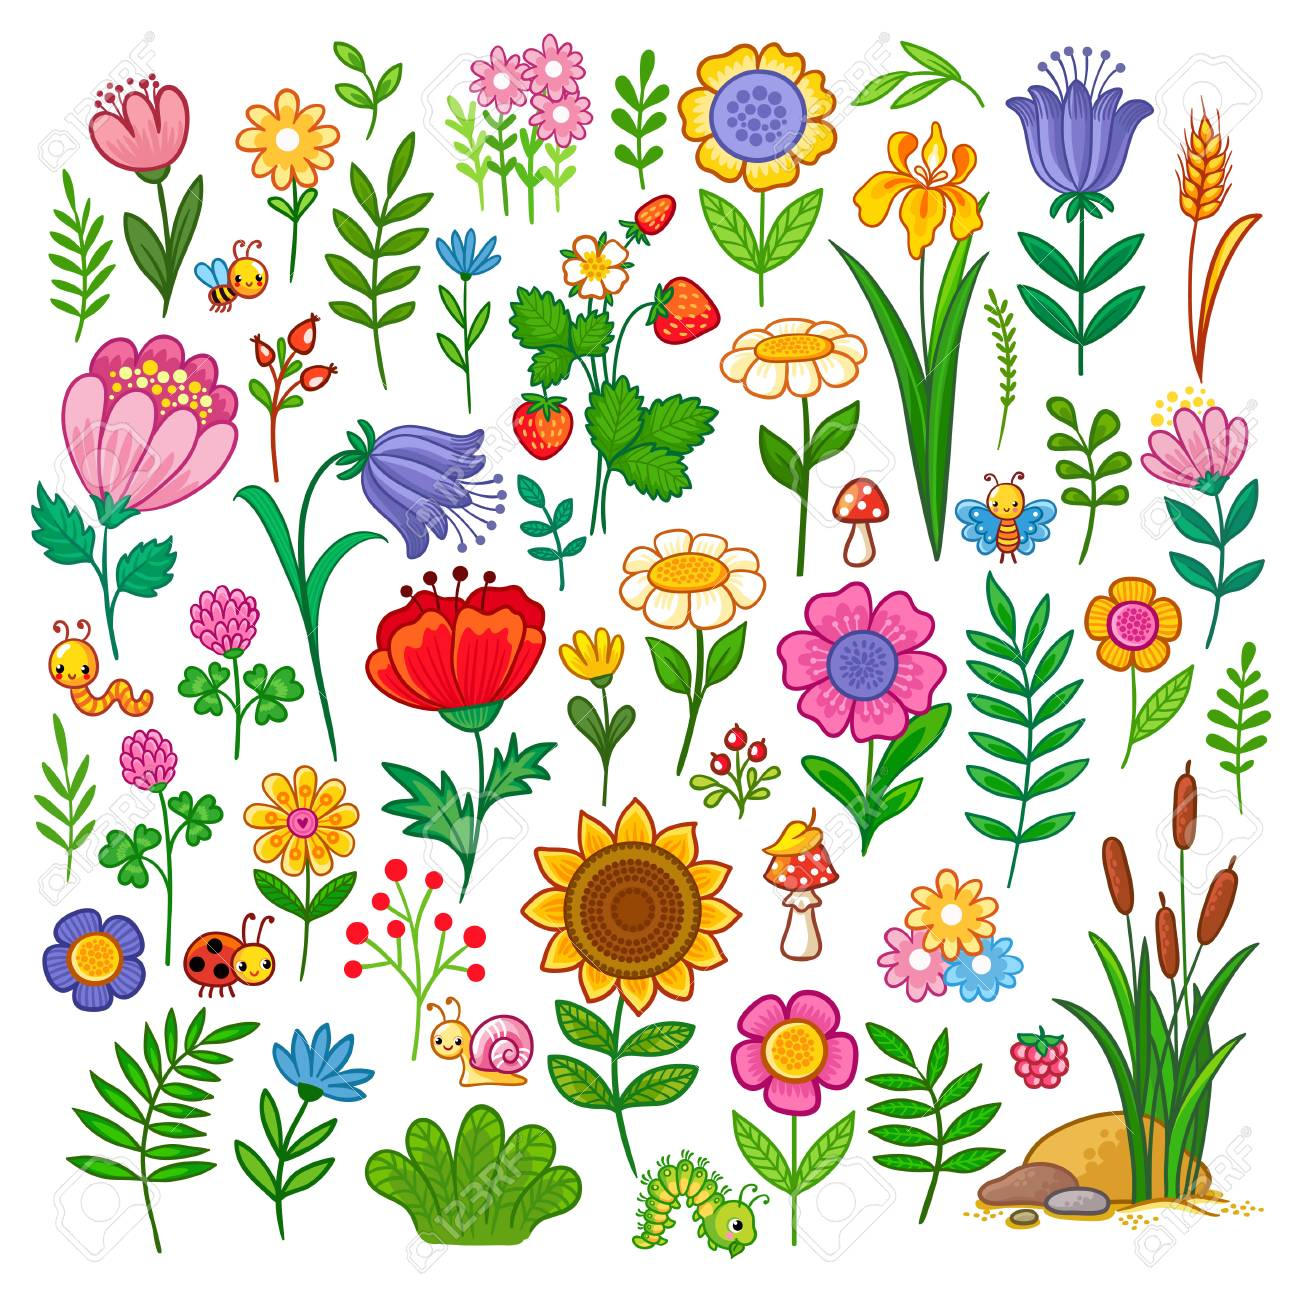 Vector set with flowers. A sweet collection of insects and plants in the children's cartoon style. - 88856886